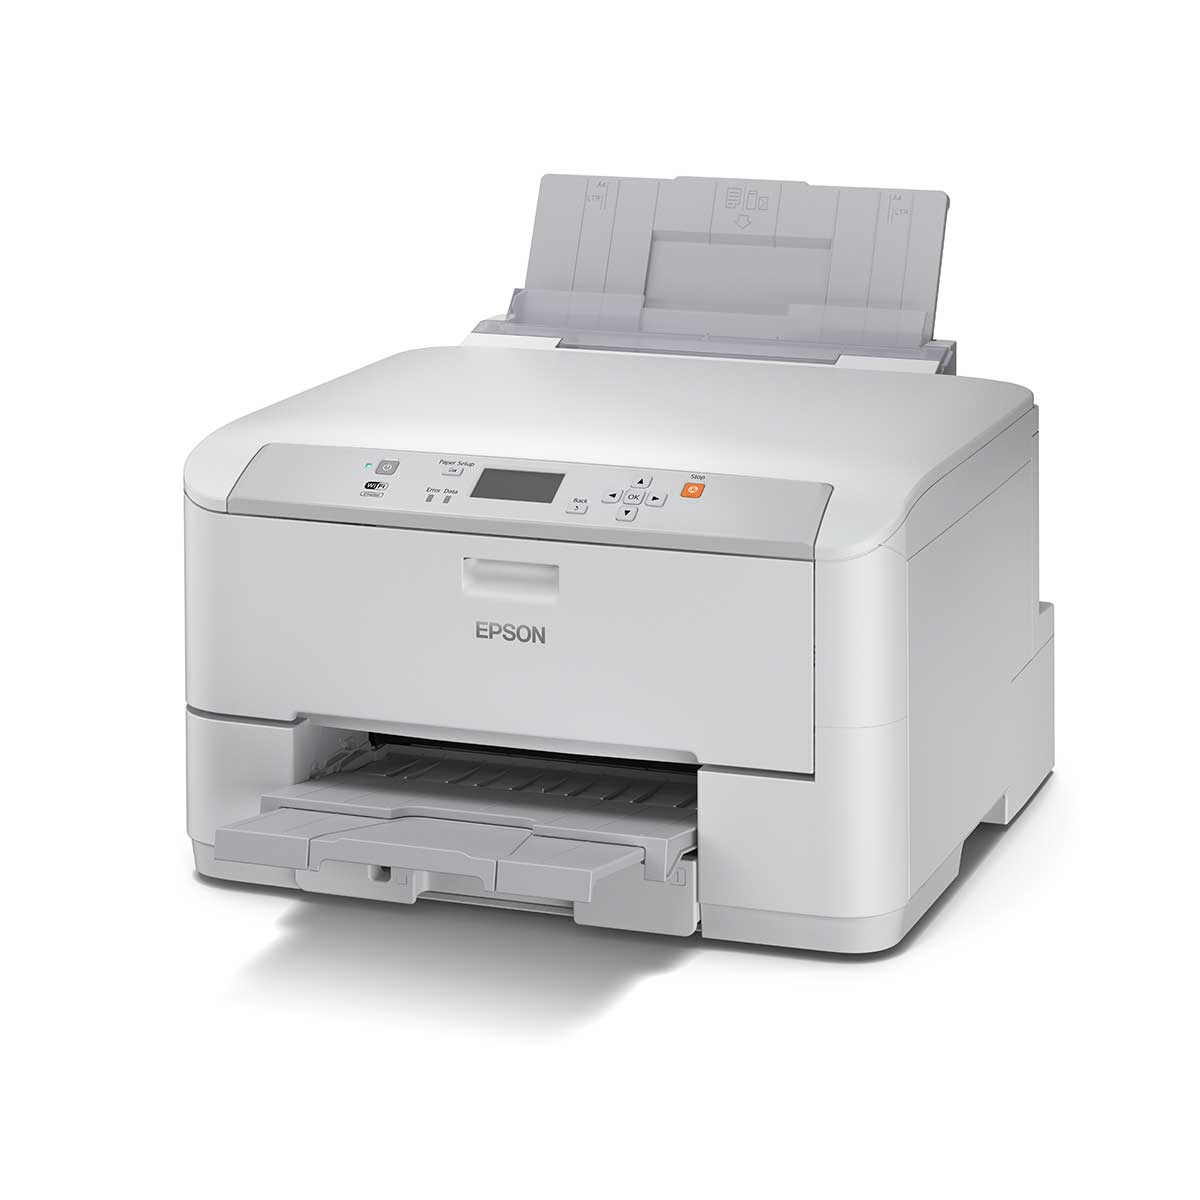 Epson WorkForce Pro WF-5190DW A4 Inkjet Printer